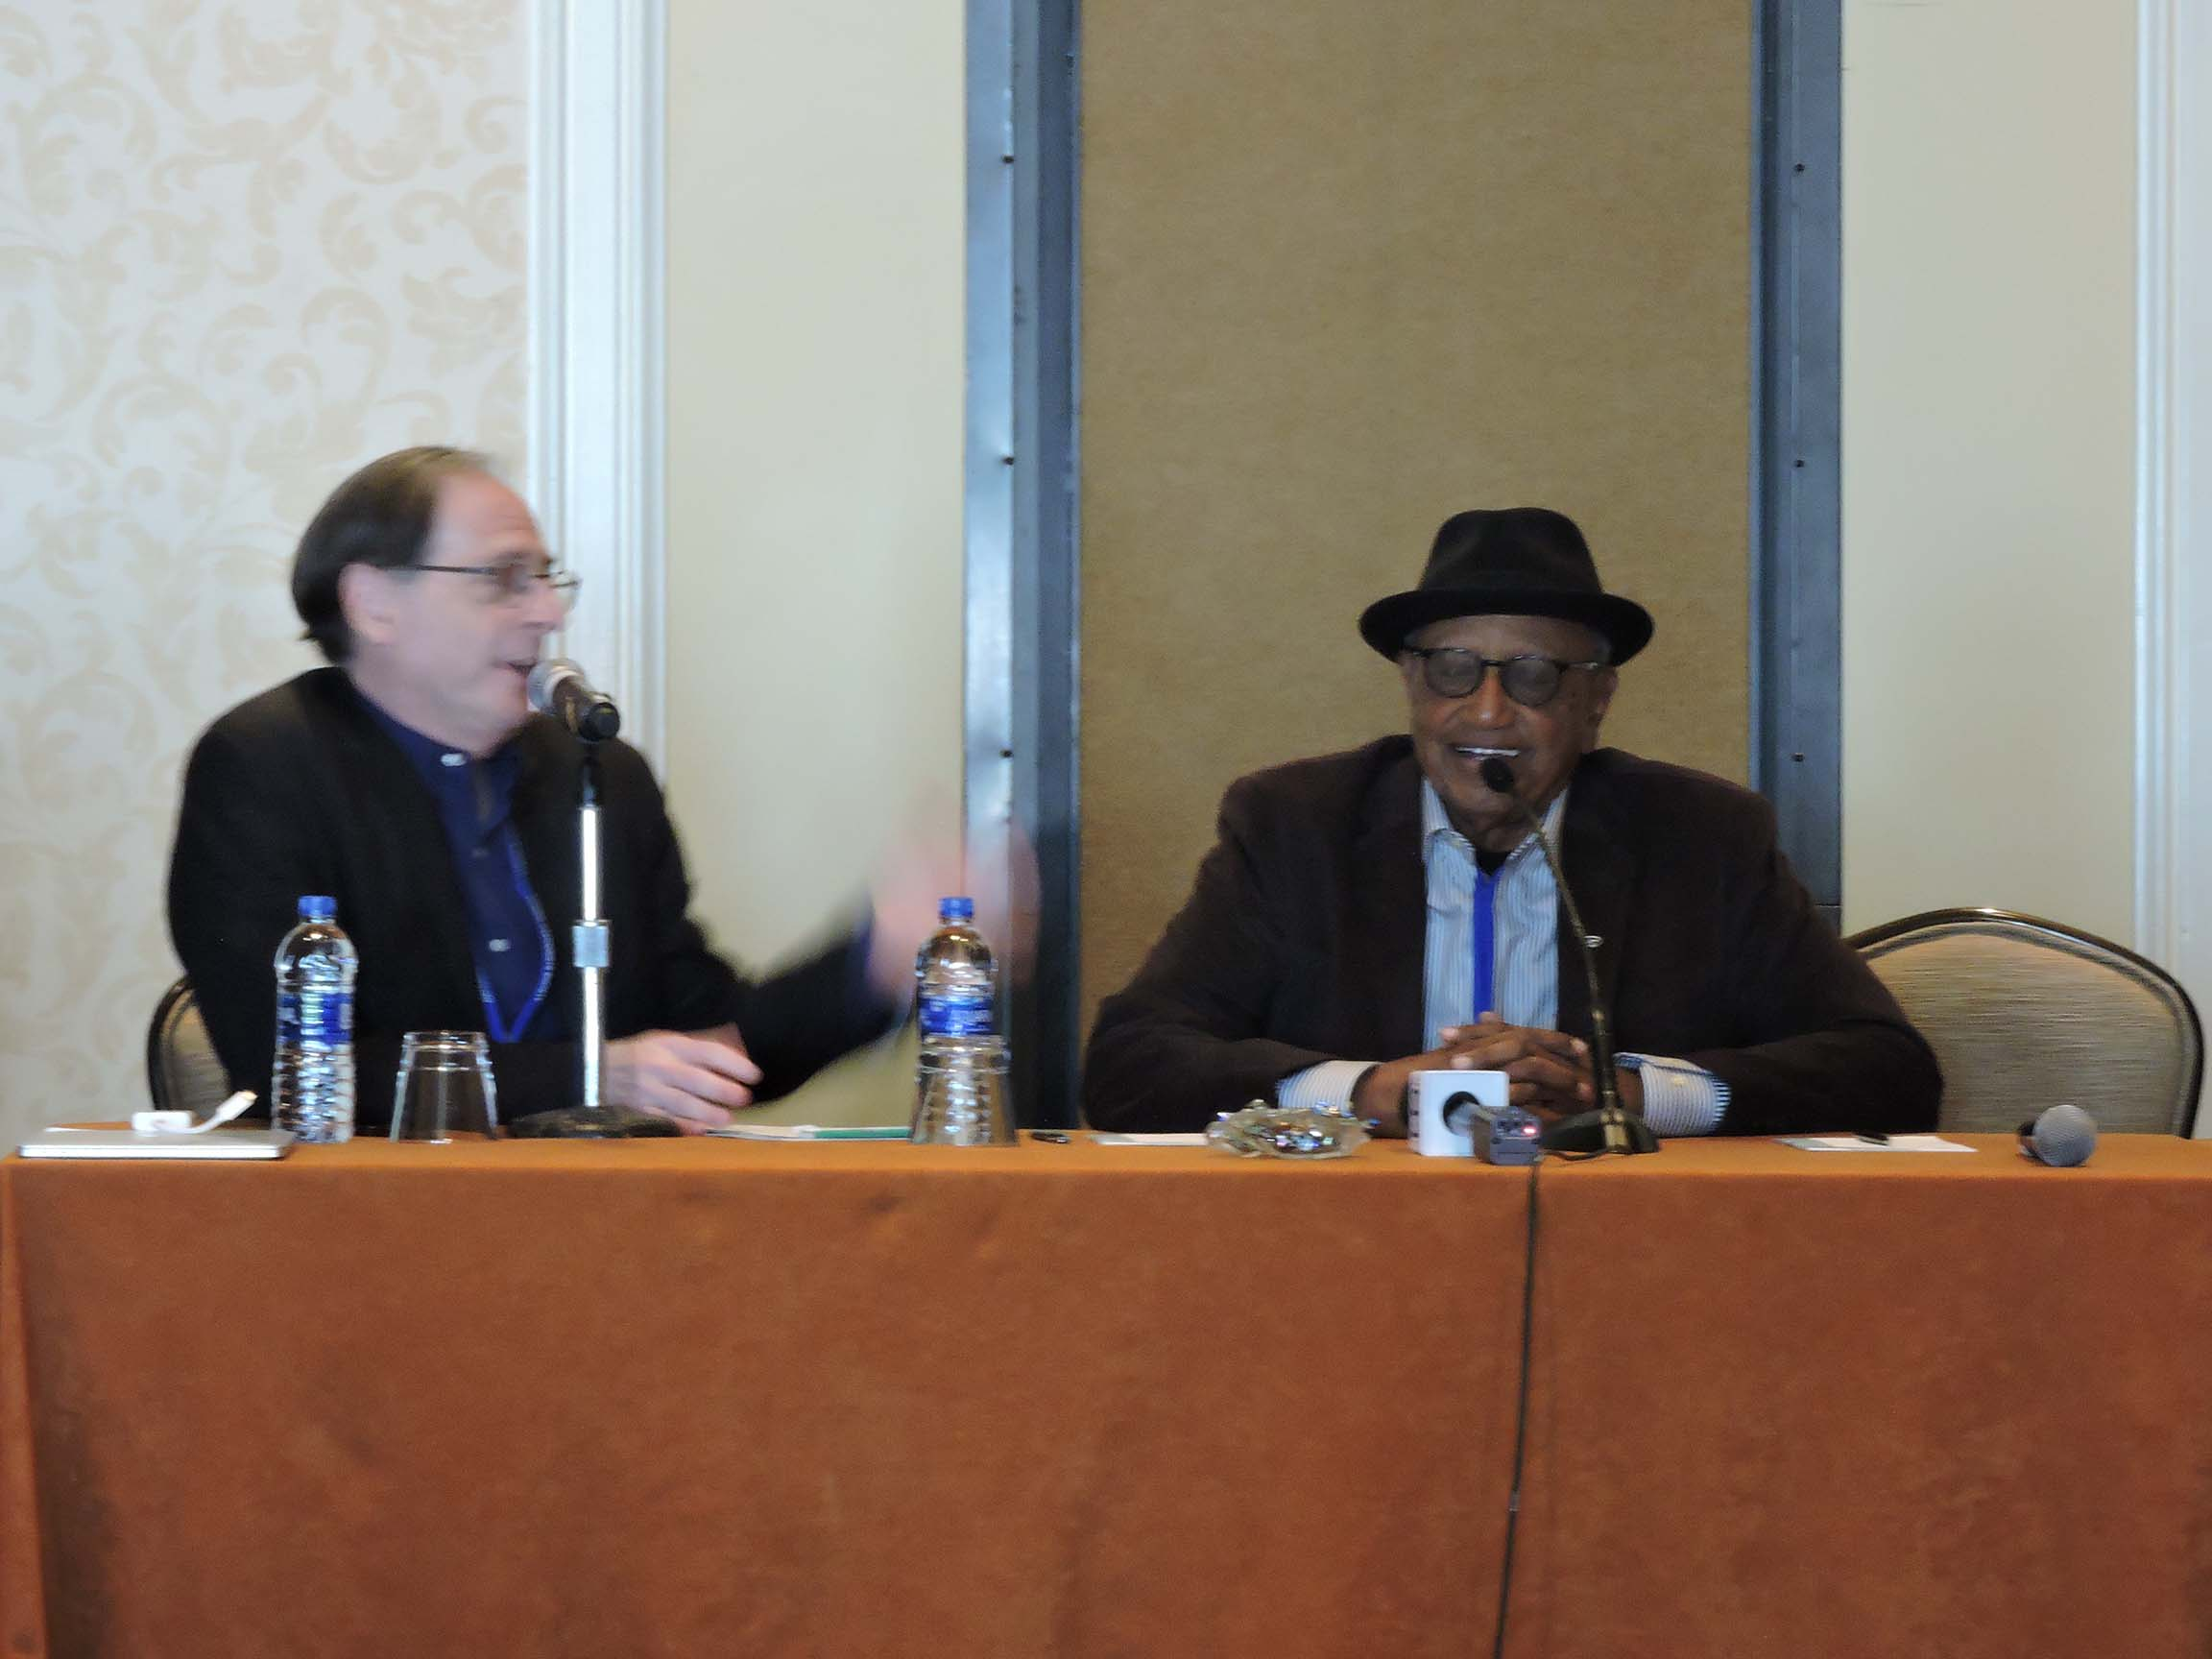 Jerry Beck (left) and Floyd Norman